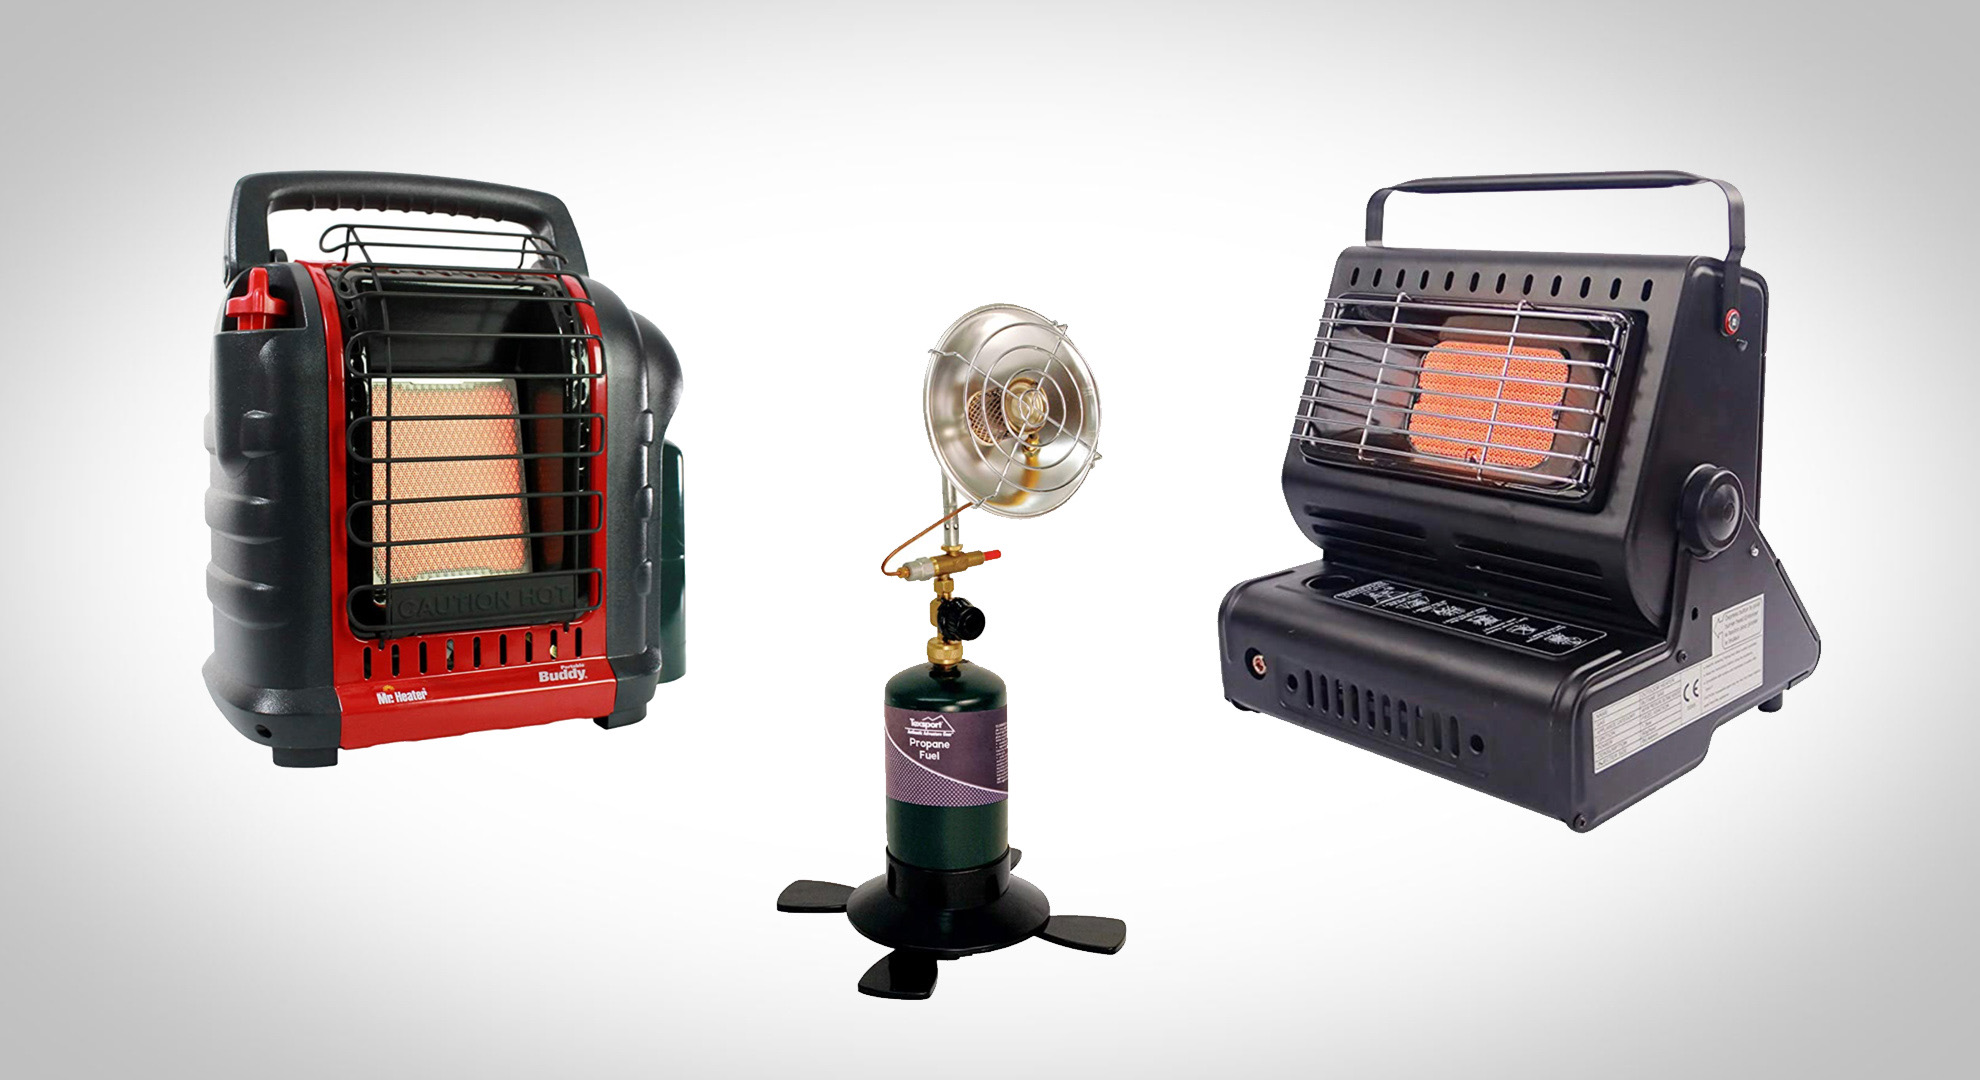 Camping Tent Heater: 5 Best Heaters for Tent Camping and ...